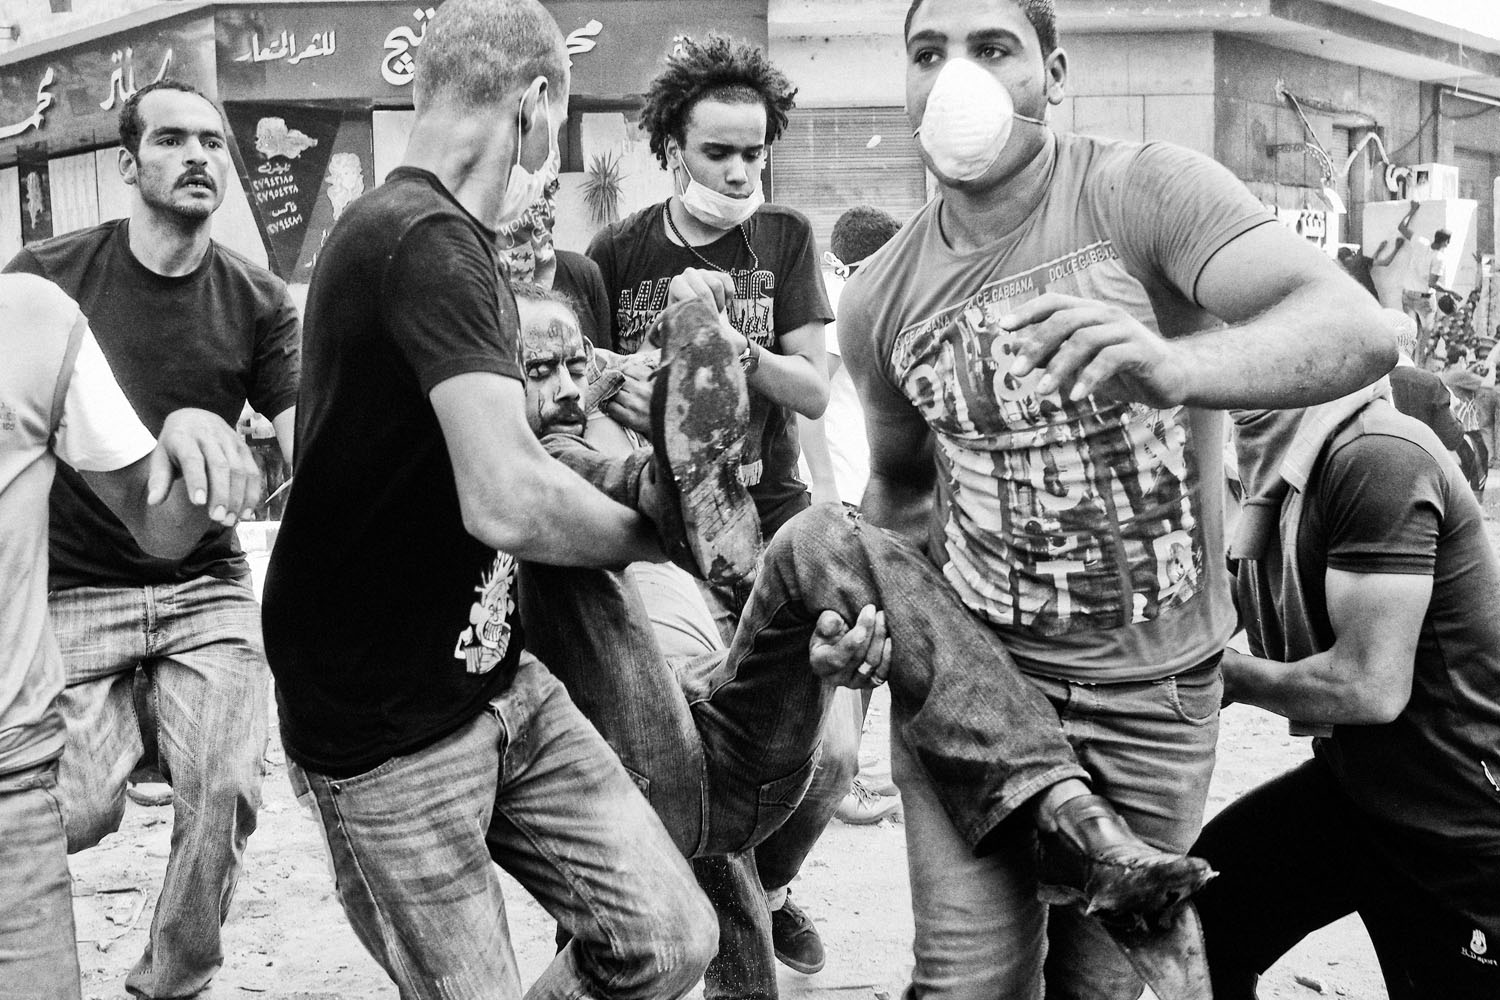 Protestors carry an injured comrade away from the scene.